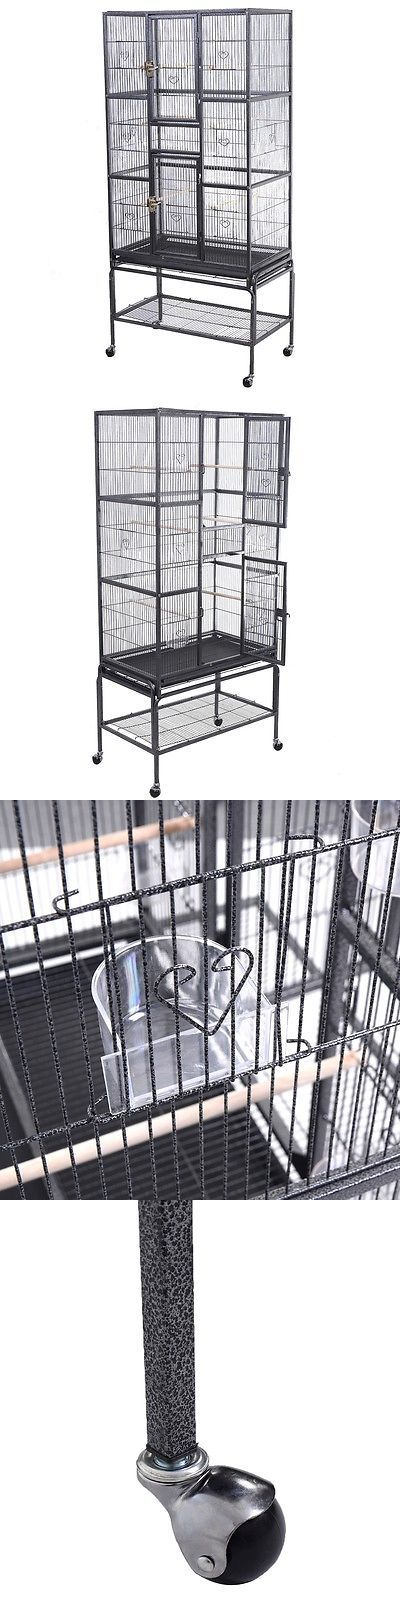 Cages 46289: New Bird Parrot Cage Chinchilla Cockatiel Conure Large W Stand And Two Doors -> BUY IT NOW ONLY: $99.99 on eBay!